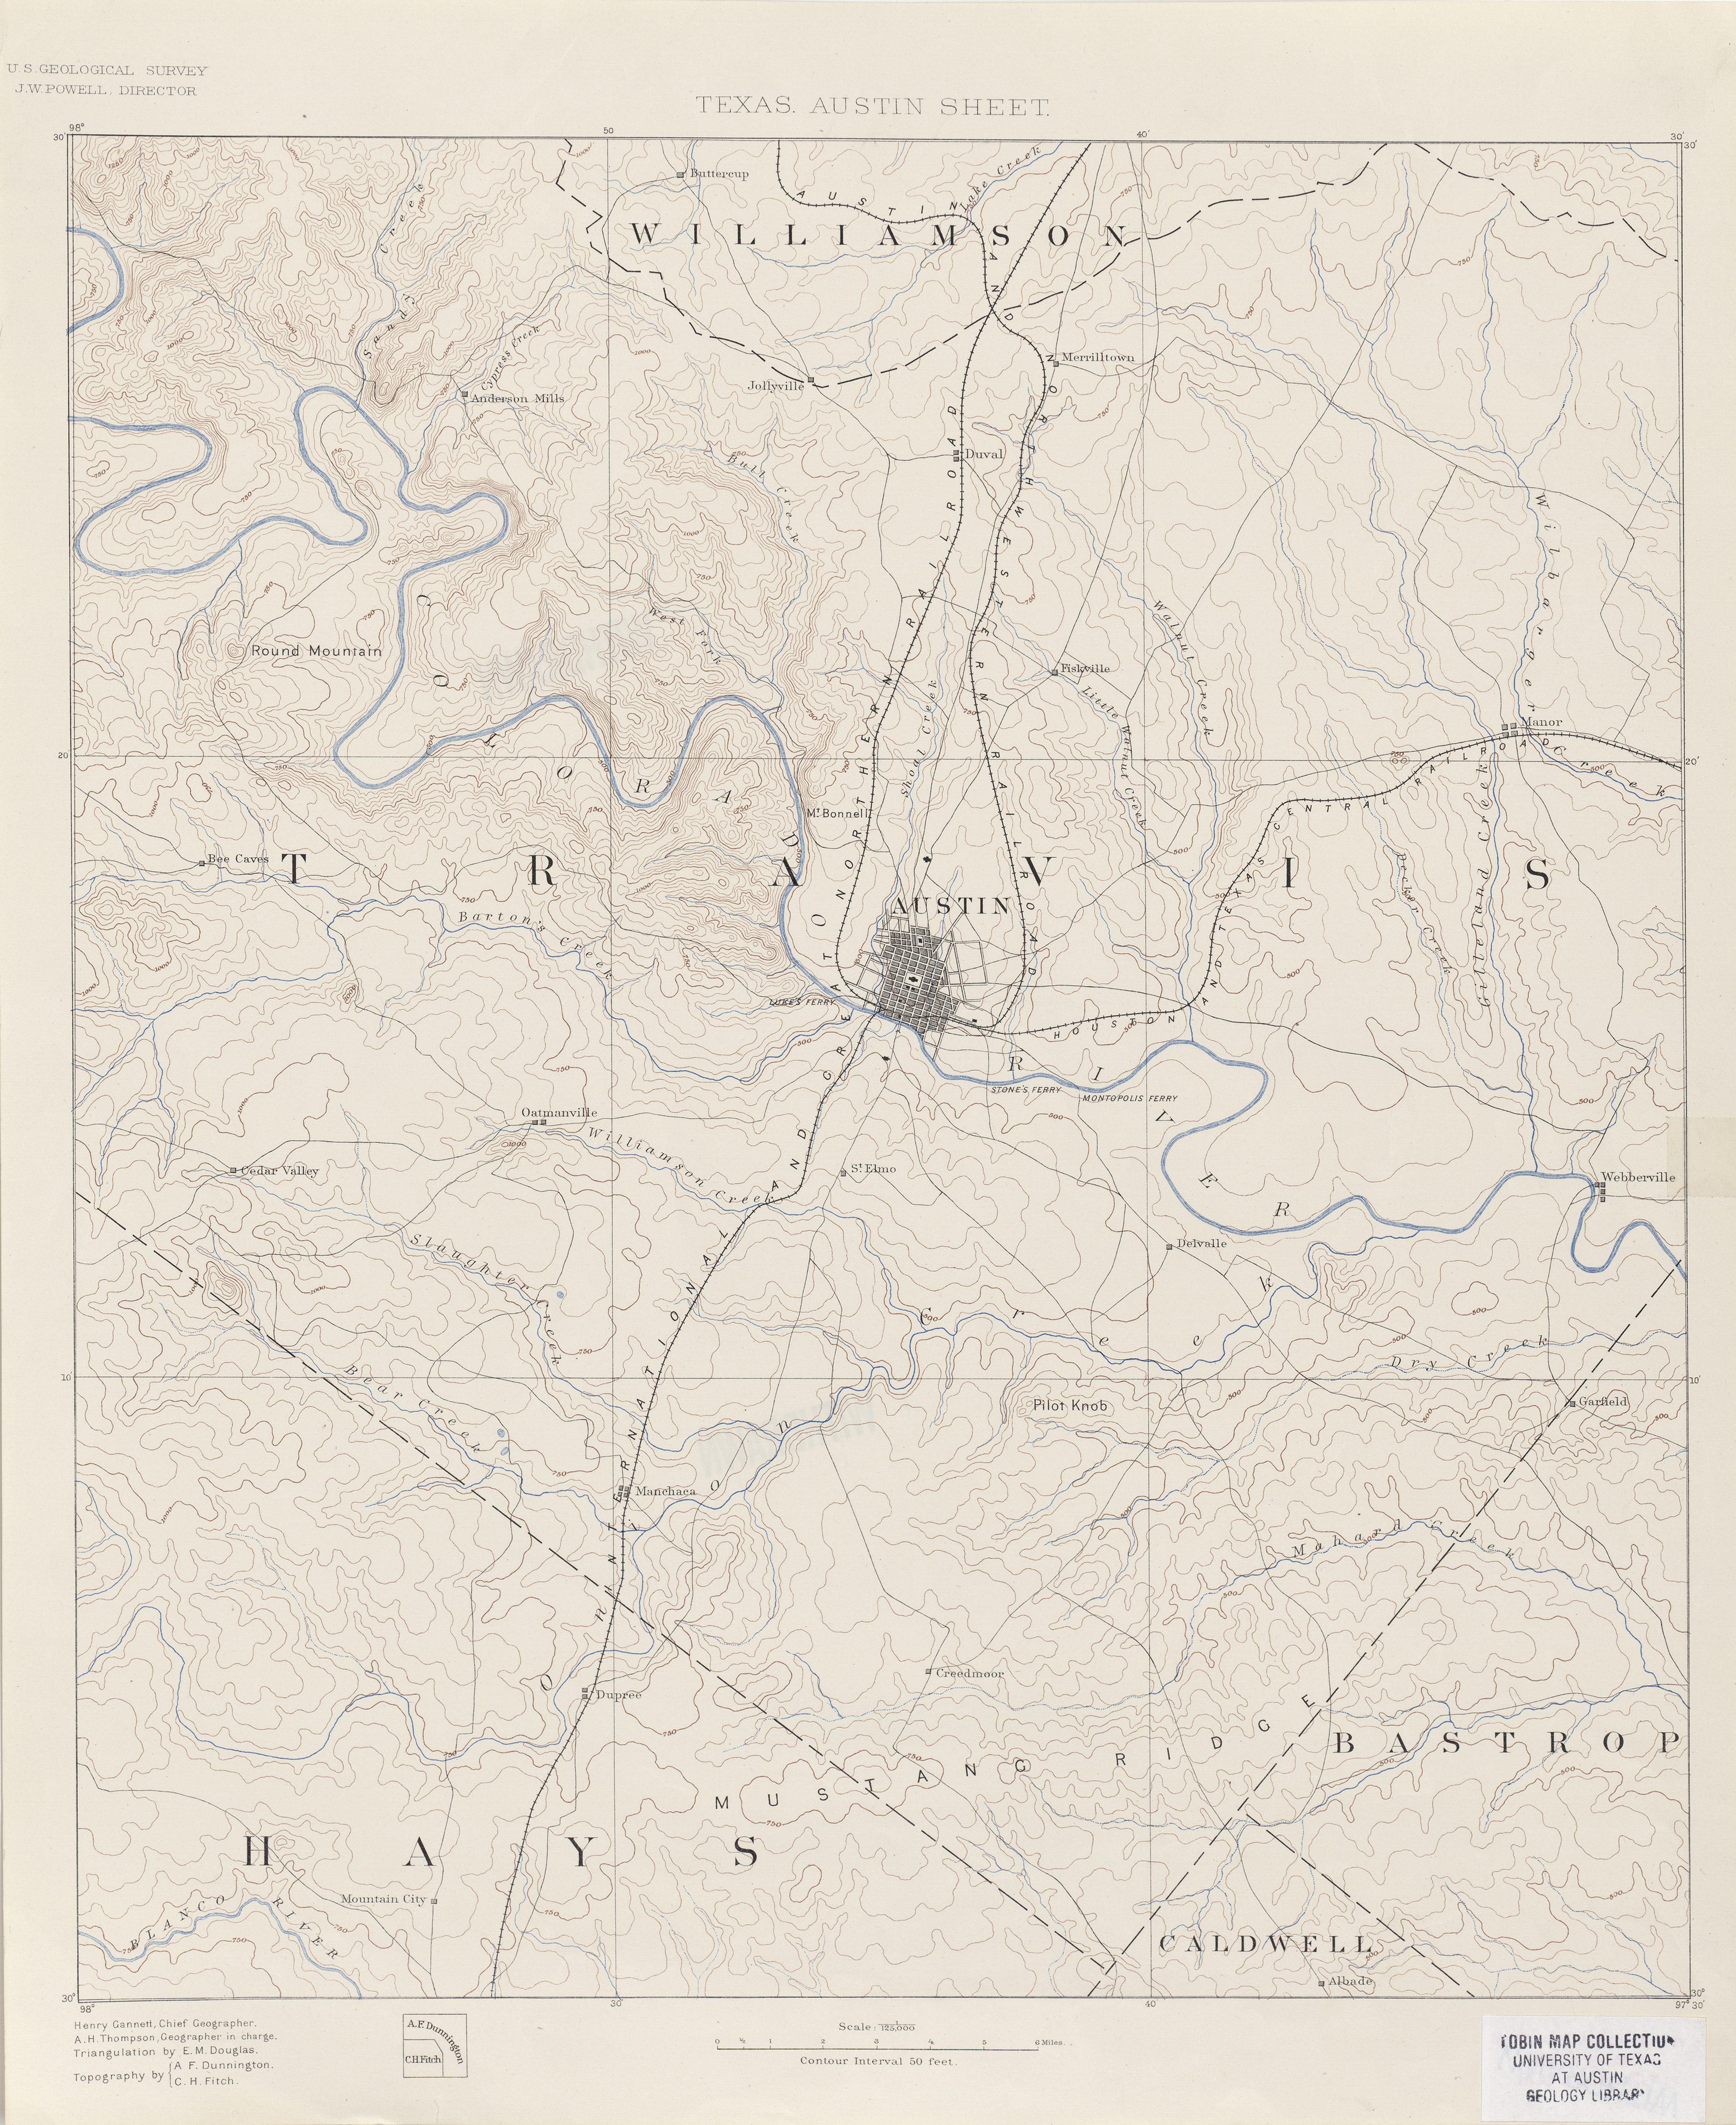 Austin Texas Topographic Maps PerryCastañeda Map Collection - Us topographic road map